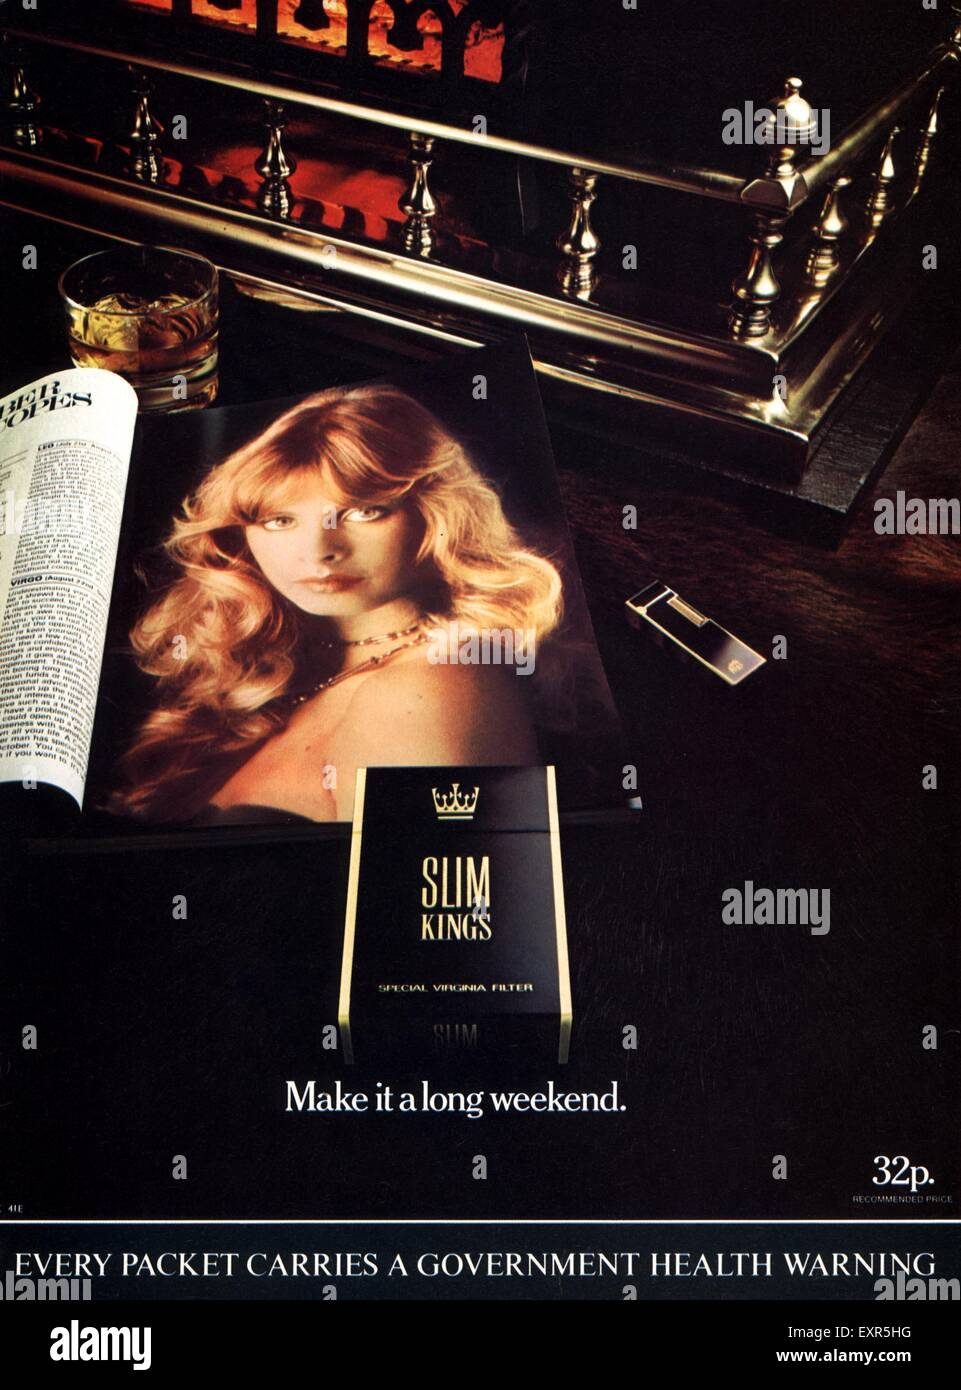 1980s UK Slim Kings Magazine Advert - Stock Image